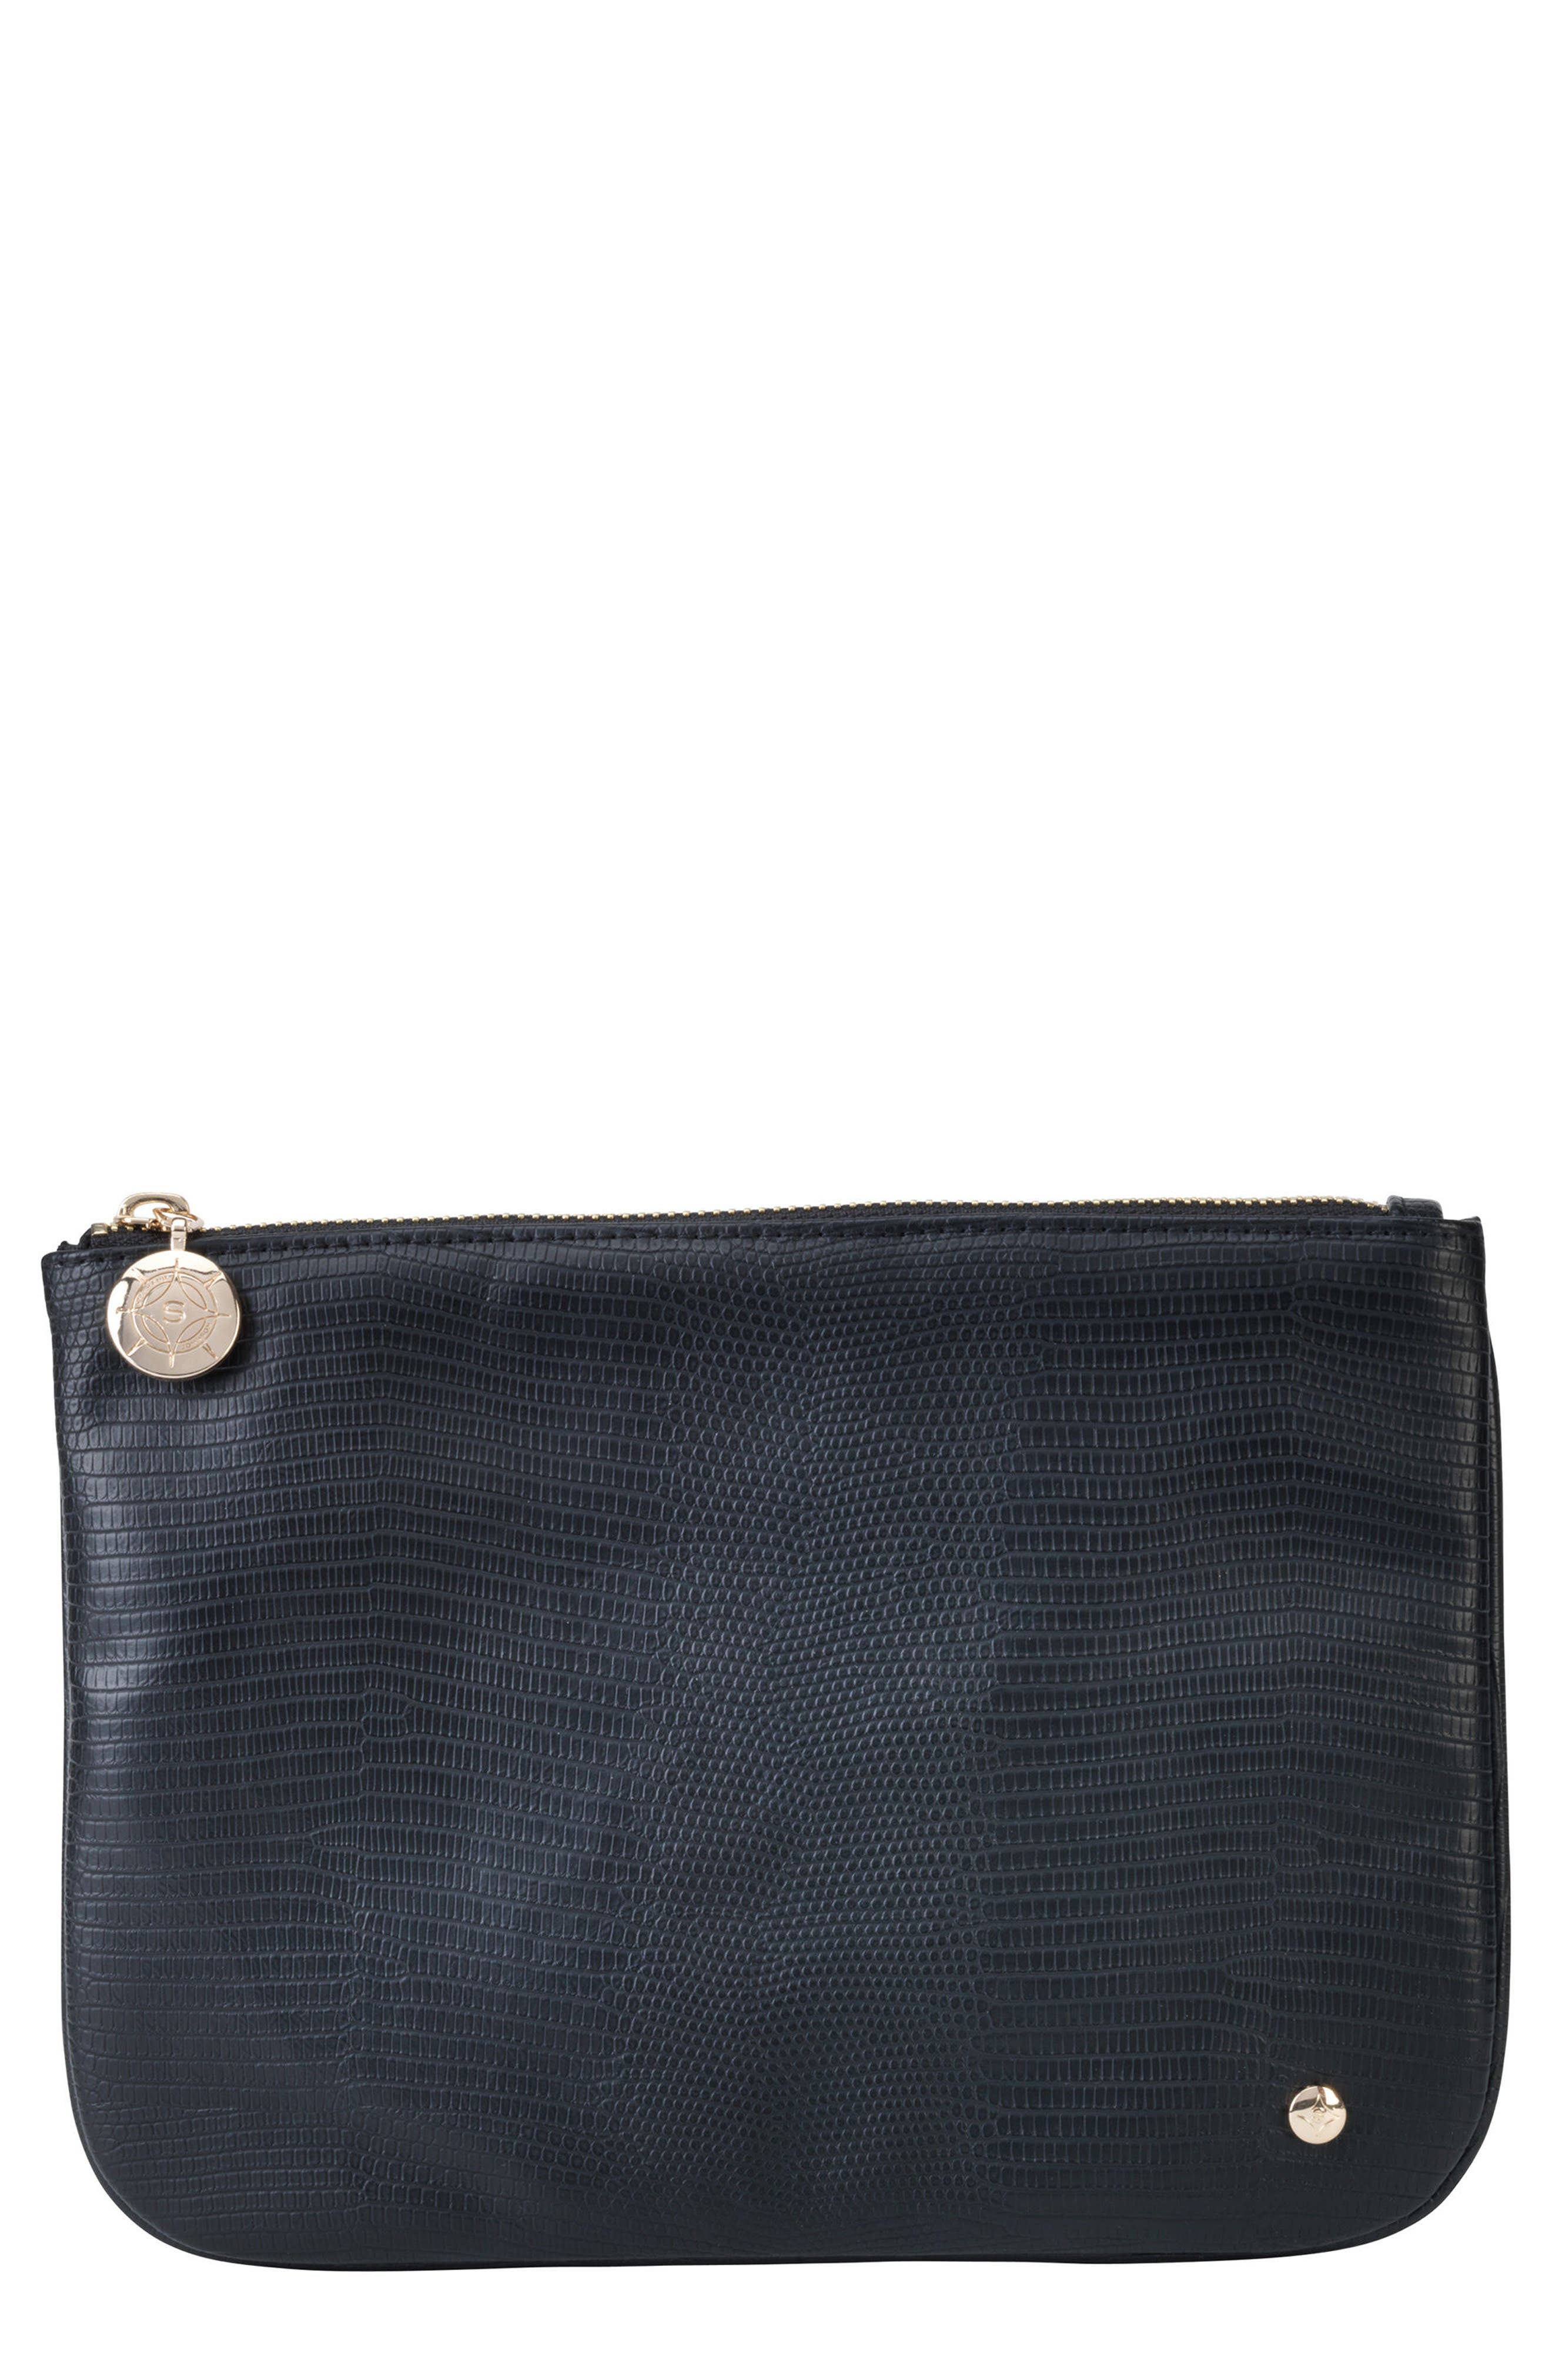 Alternate Image 1 Selected - Stephanie Johnson Galapagos Noir Large Flat Pouch